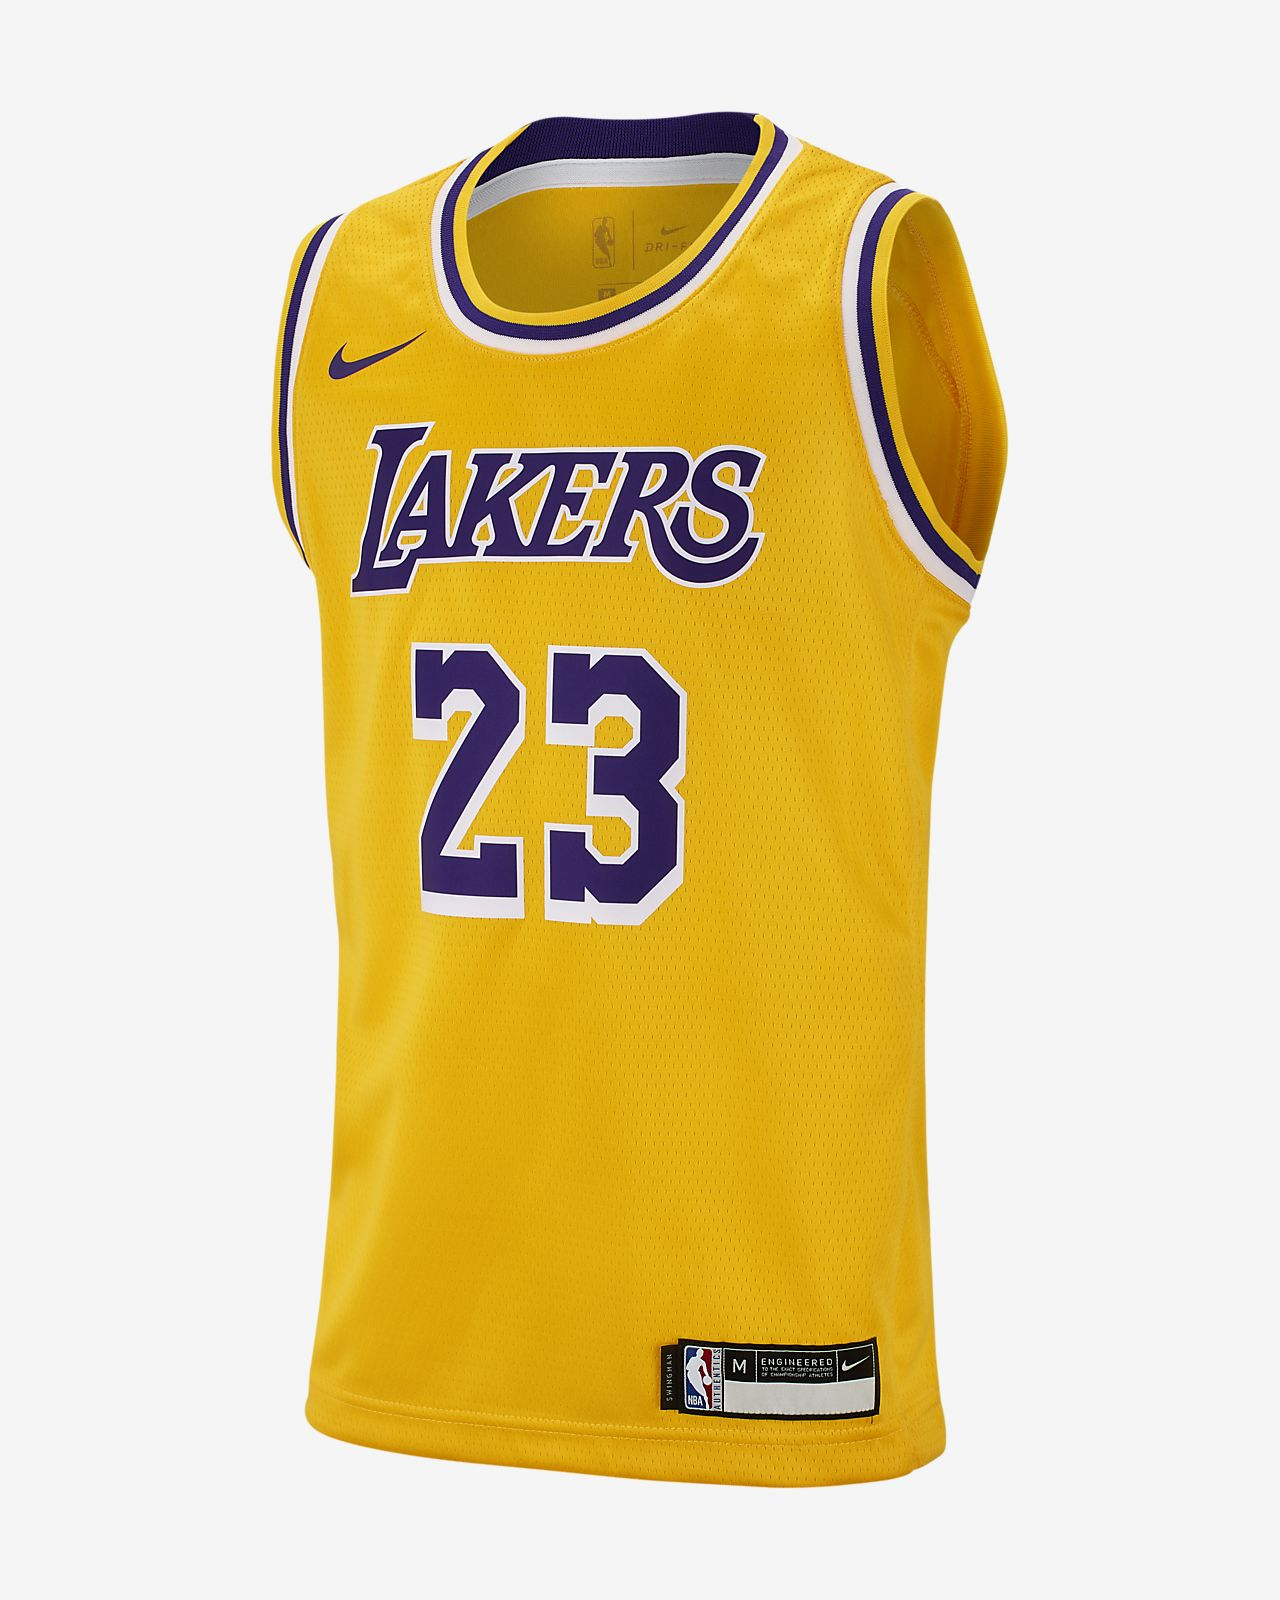 16c68c11655 Big Kids  Nike NBA Jersey. LeBron James Icon Edition Swingman (Los Angeles  Lakers)